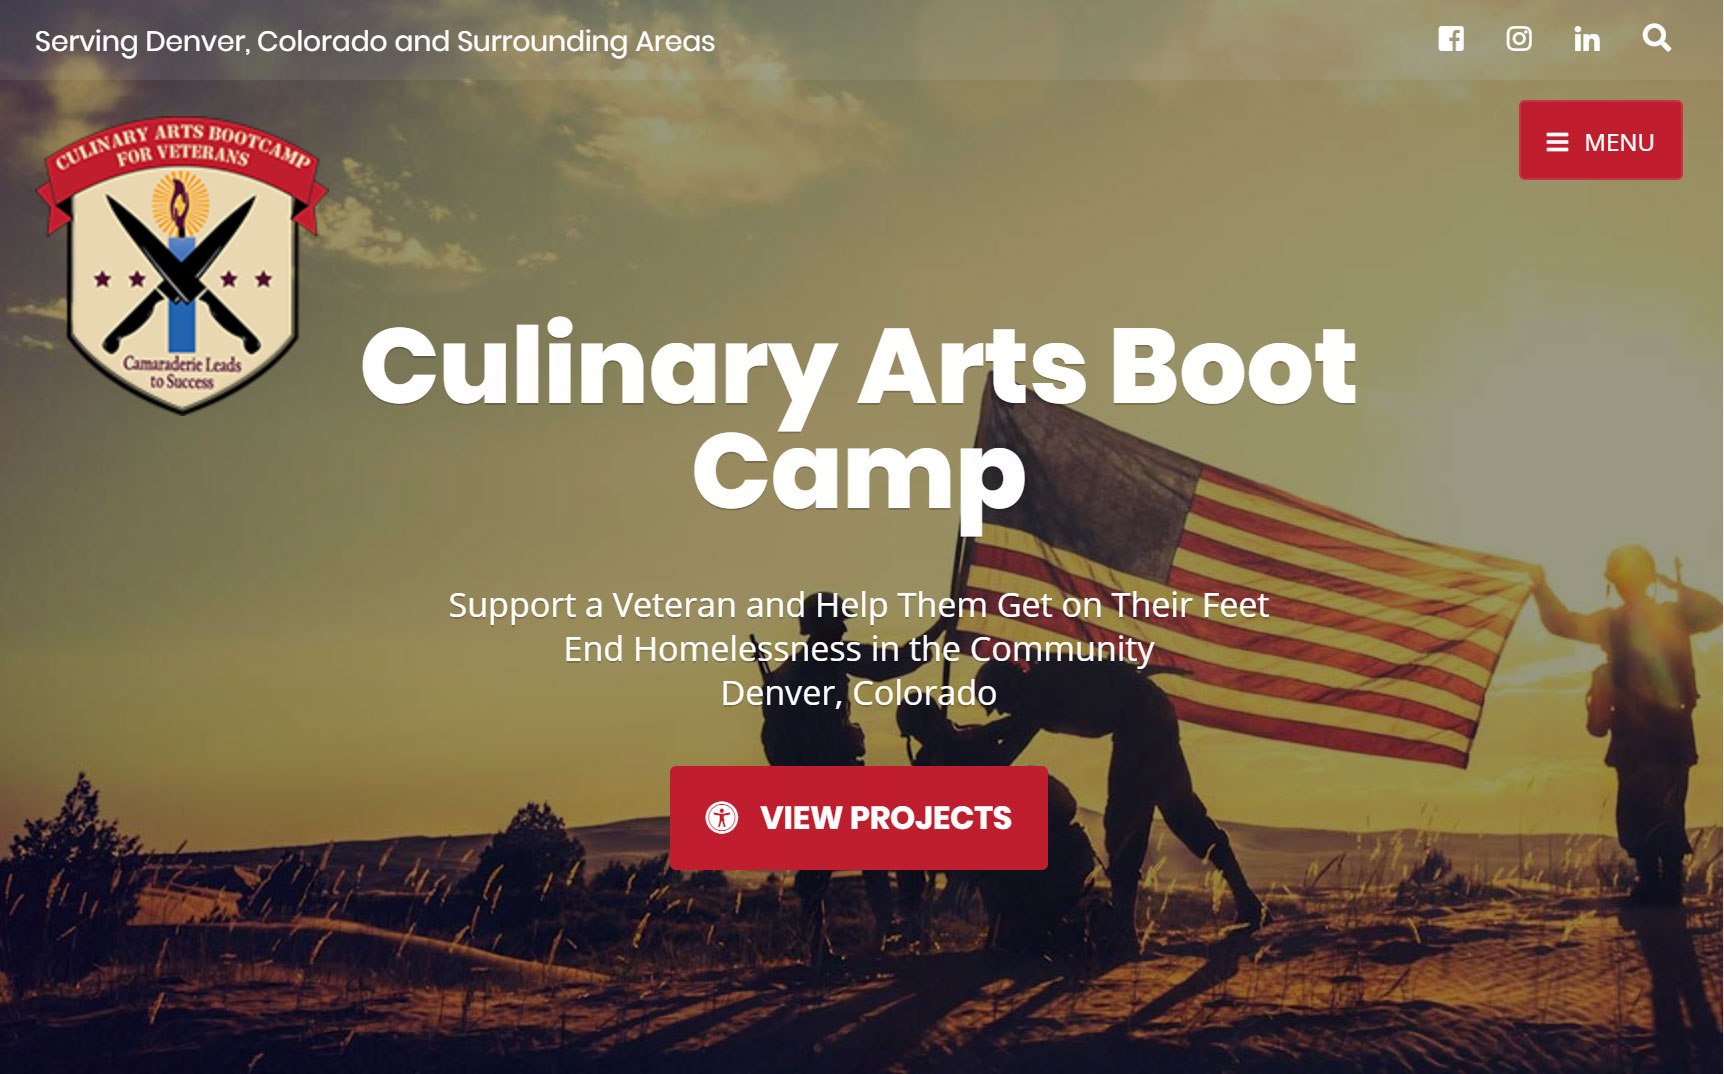 Culinary Arts Boot Camp for Veterans